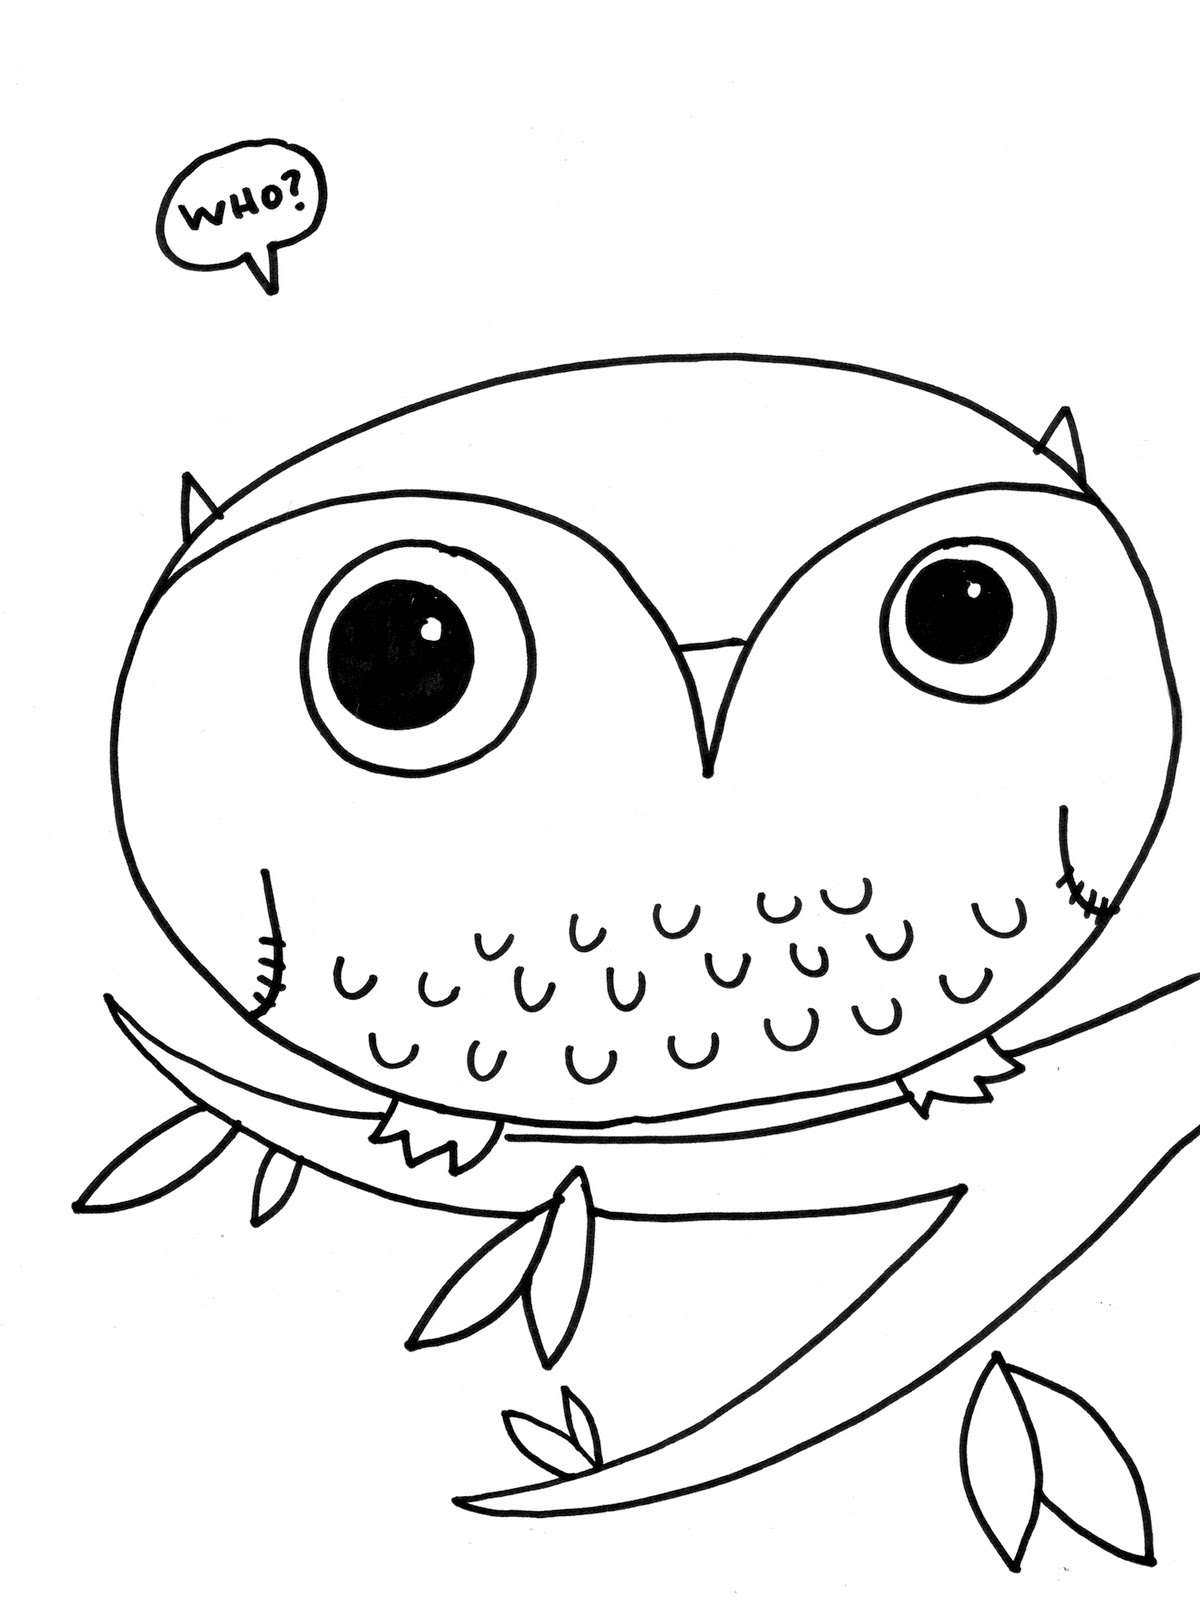 4 Images of Free Printable Owl Coloring Pages For Kids